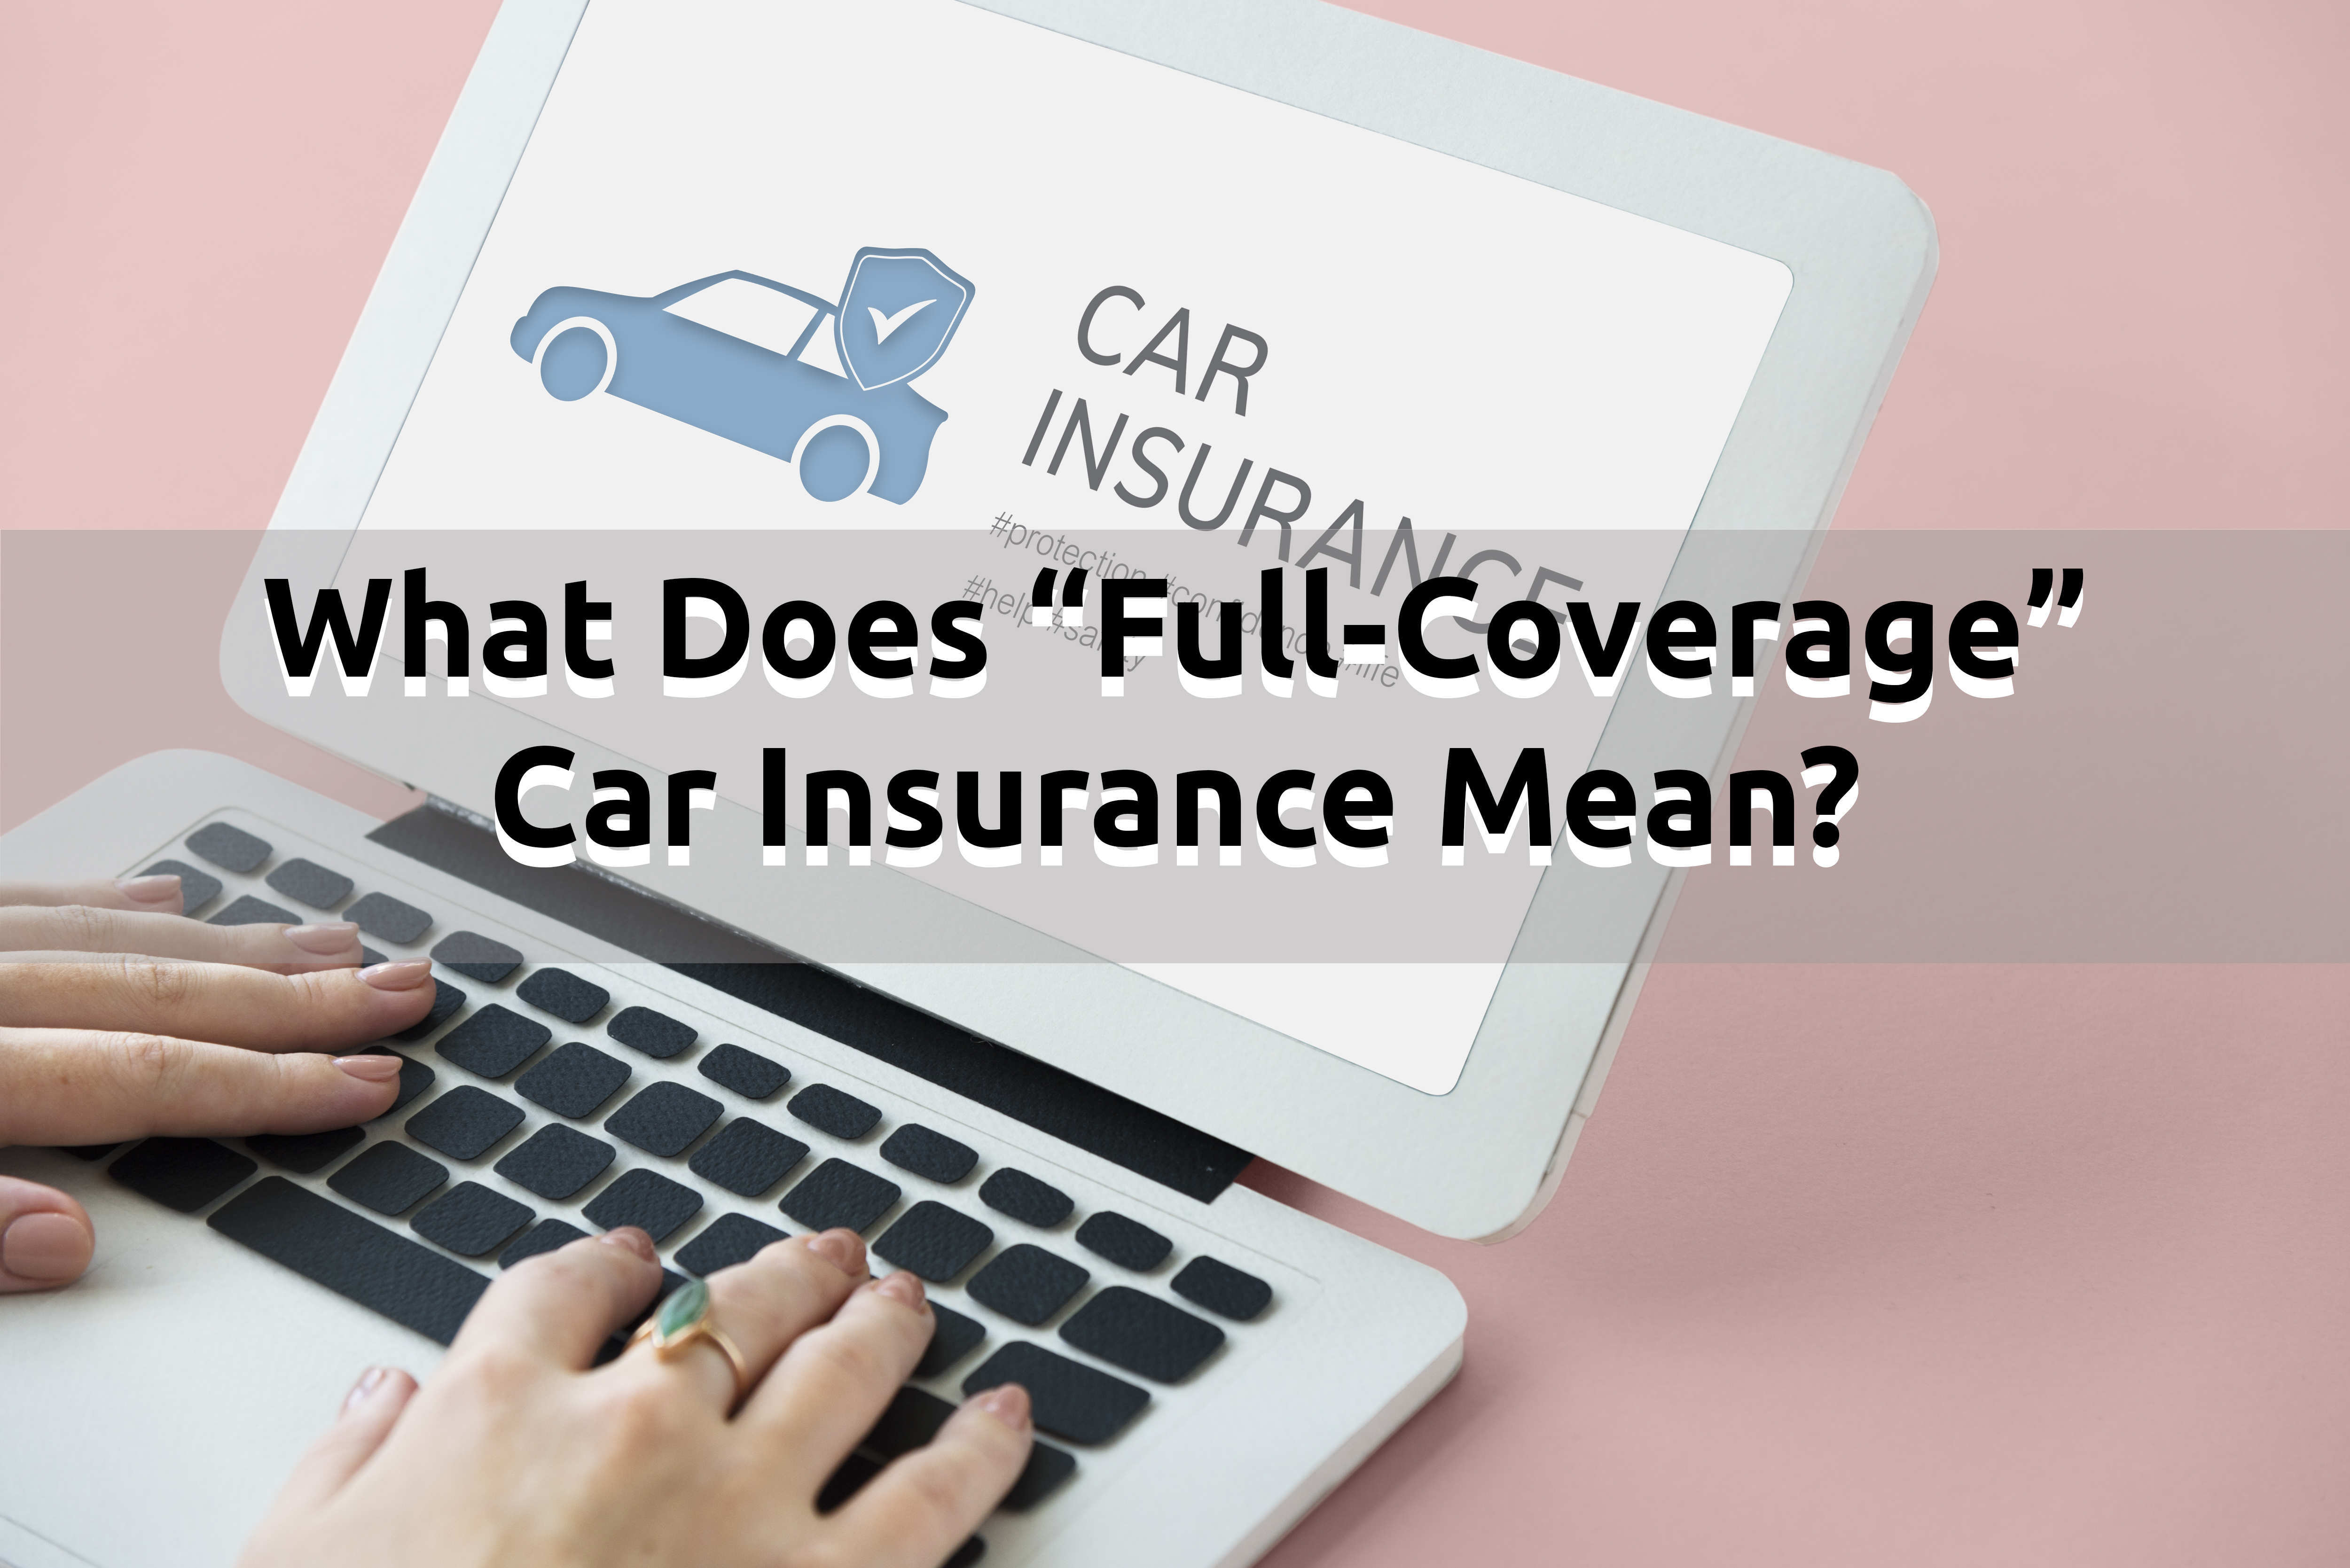 car-insurance-full-coverage-accident-benefits-featured-image